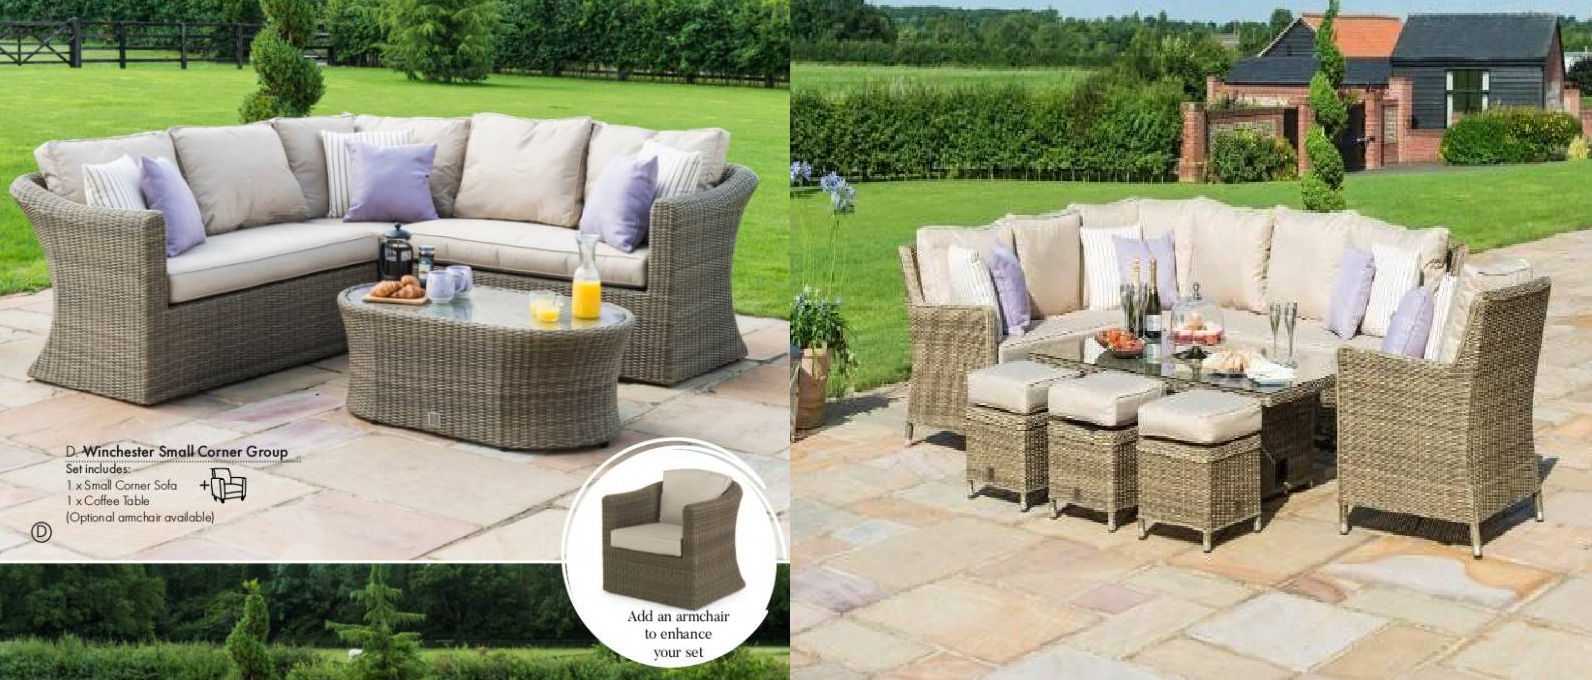 Garden furniture UK provide latest product of UK where the garden is also considered a part of the living space.